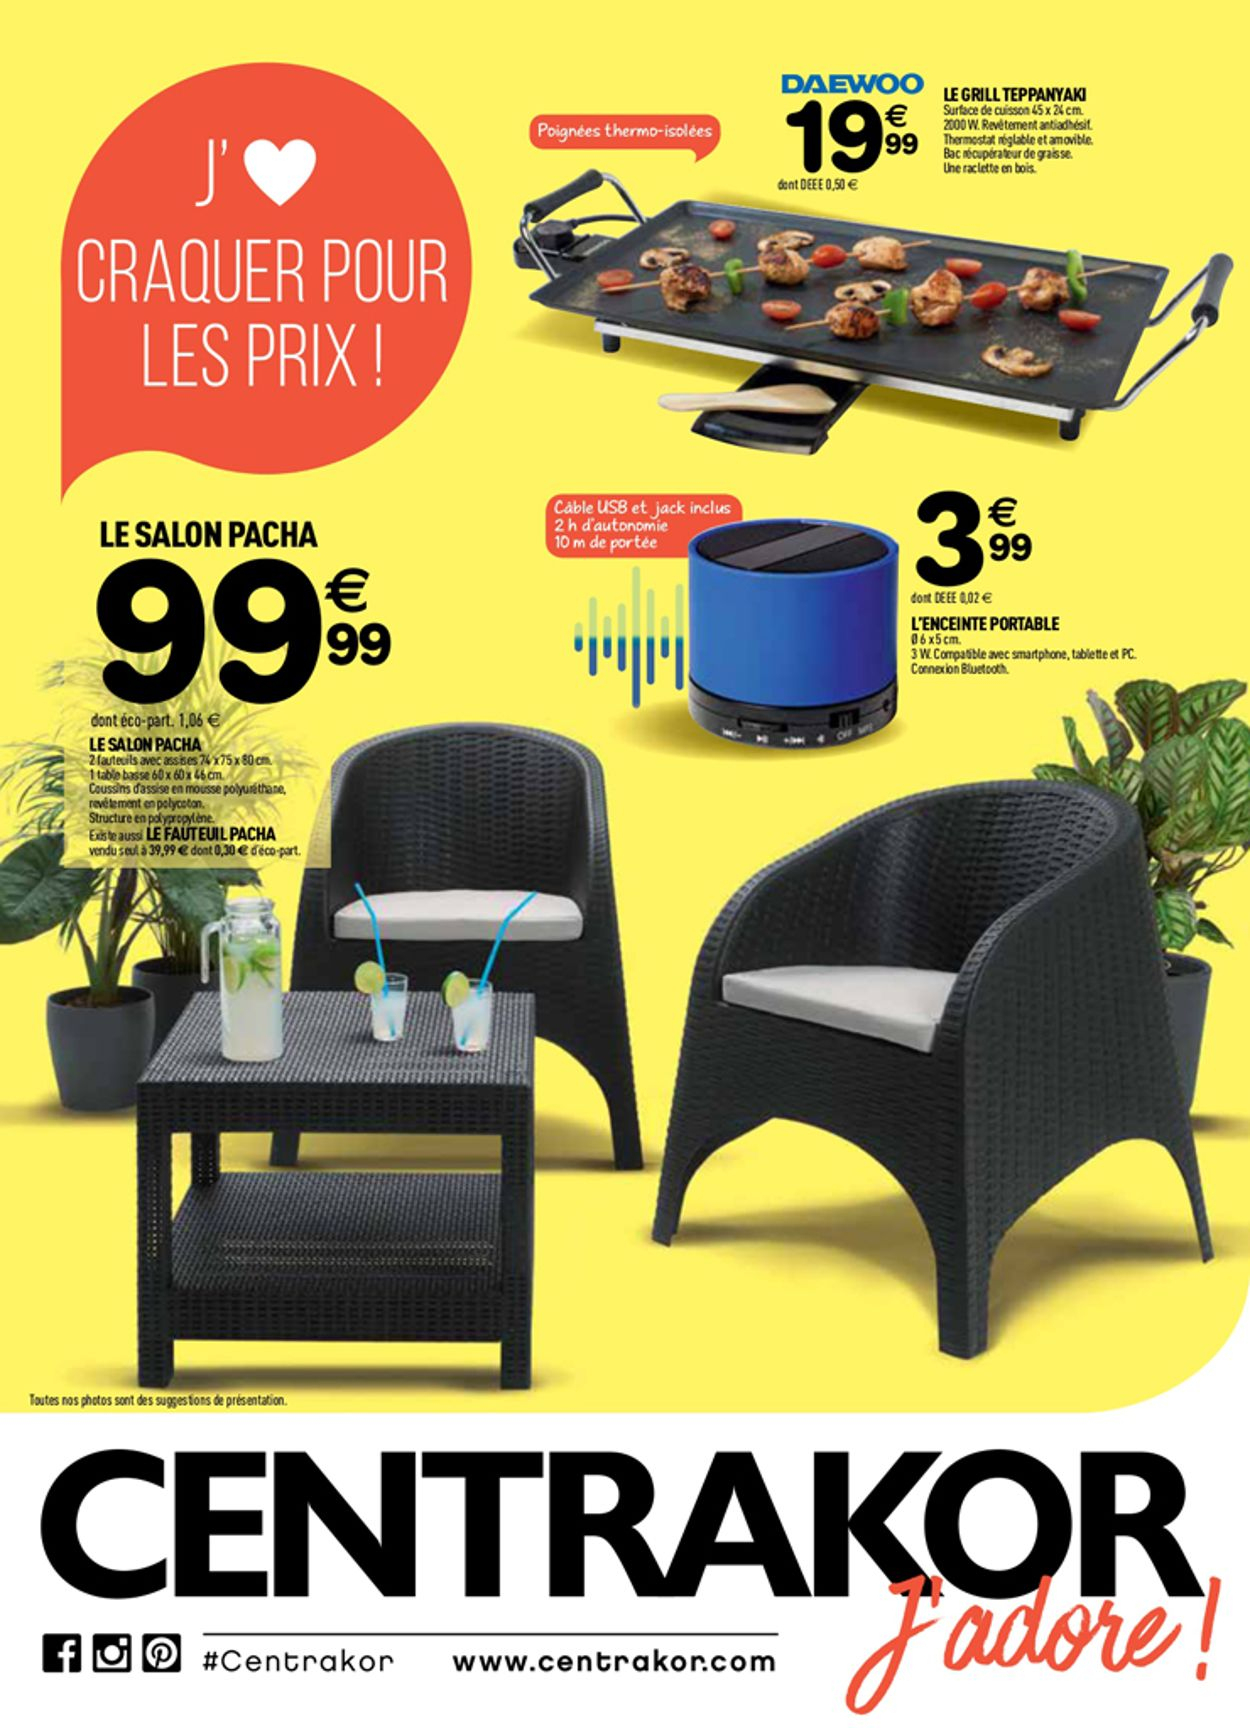 Centrakor Catalogue Actuel 01.07 - 14.07.2019 - Catalogue-24 serapportantà Centrakor Salon De Jardin